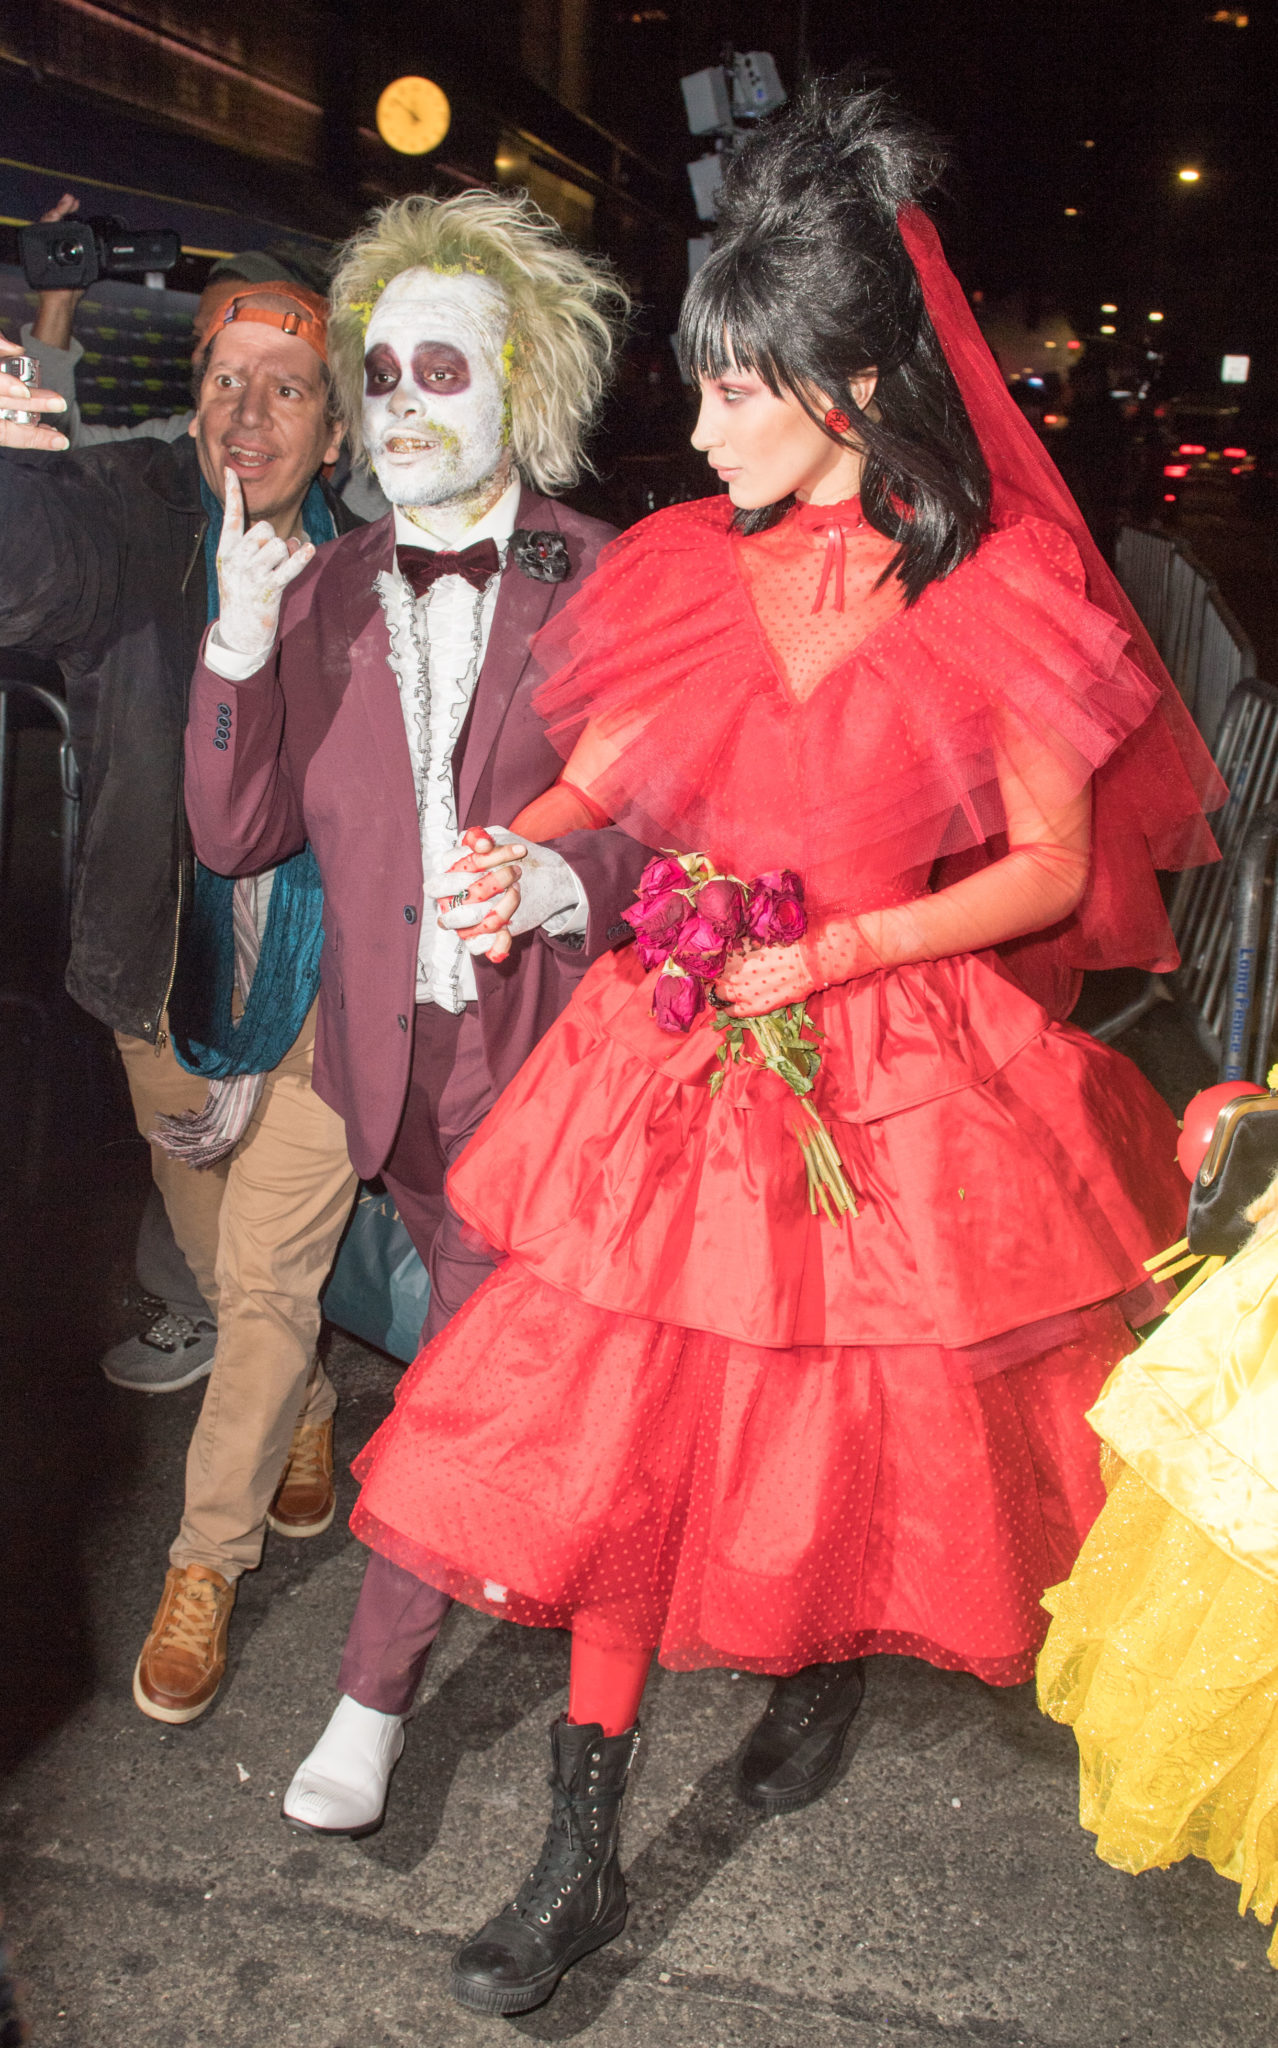 heidi klum as princess fiona & more celeb halloween costumes | spin1038